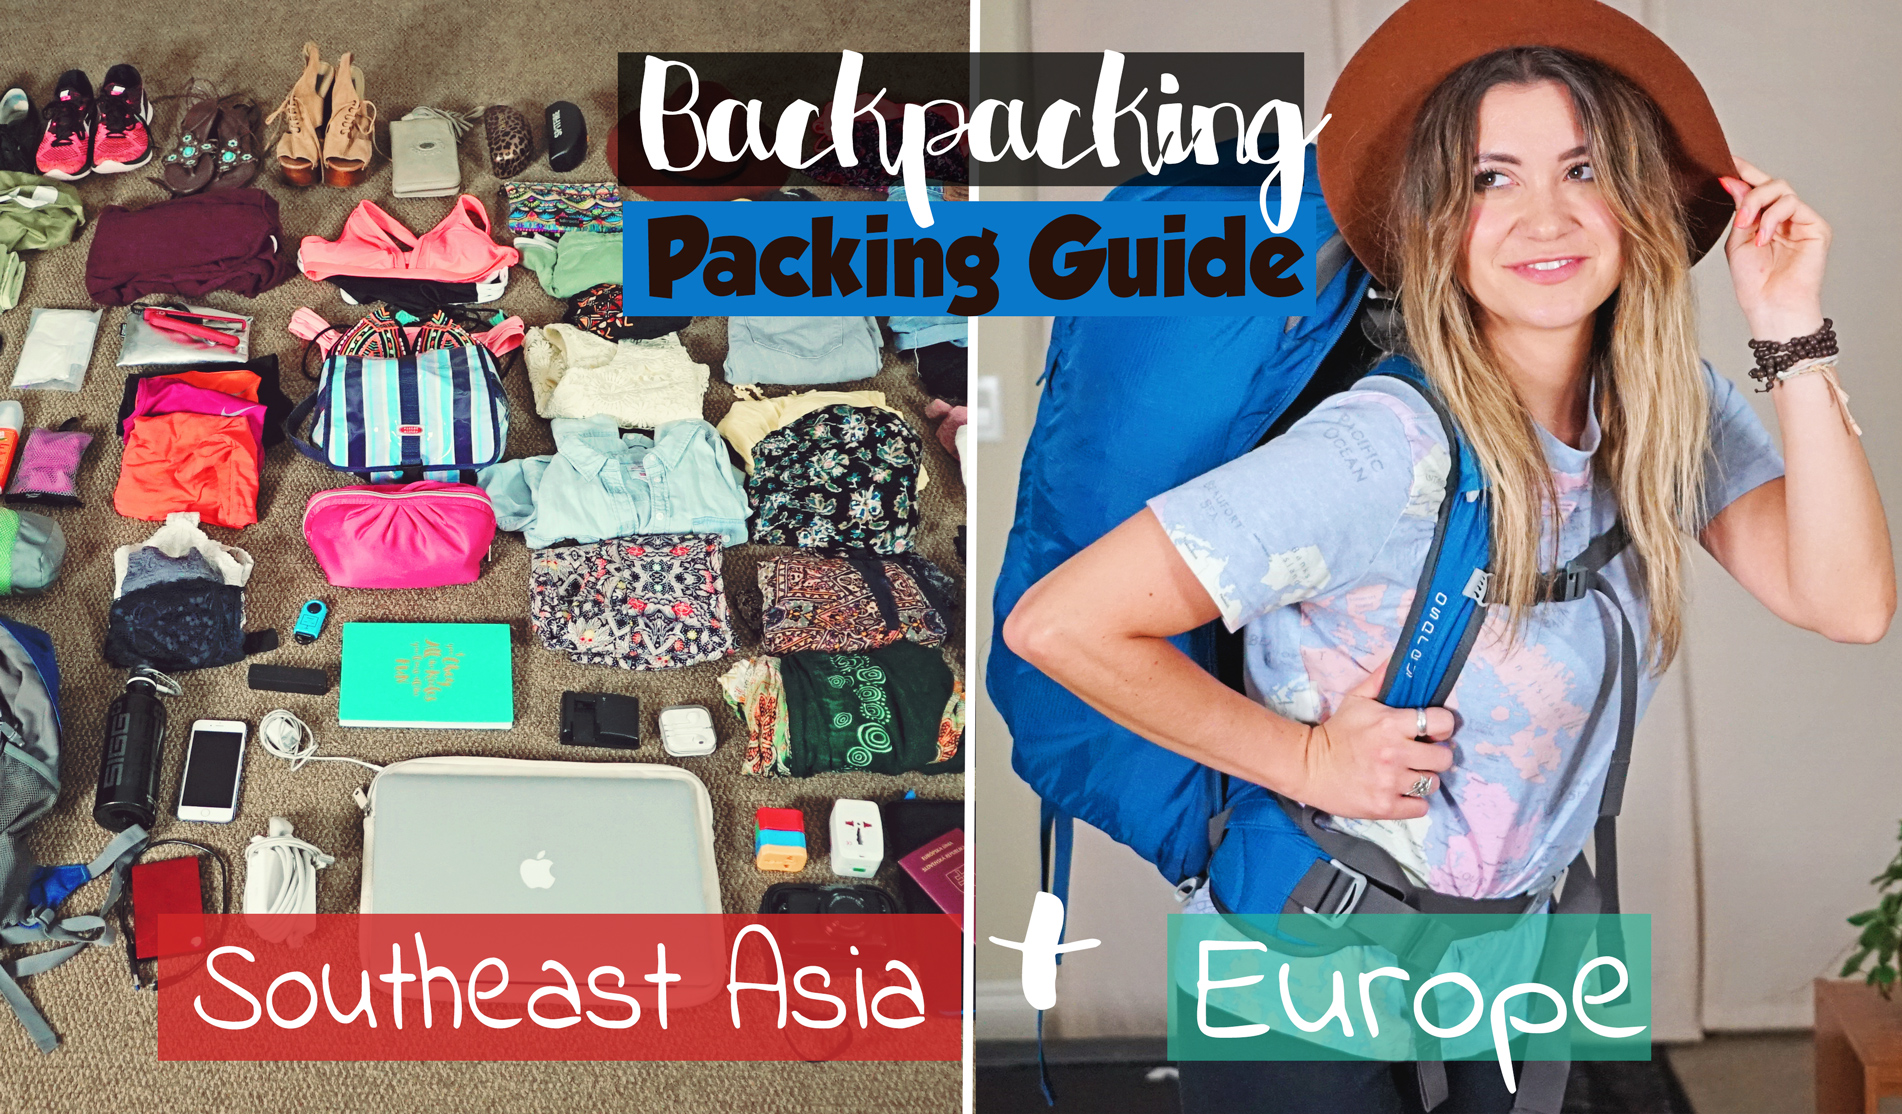 Backpacking Packing Guide Europe Amp Southeast Asia